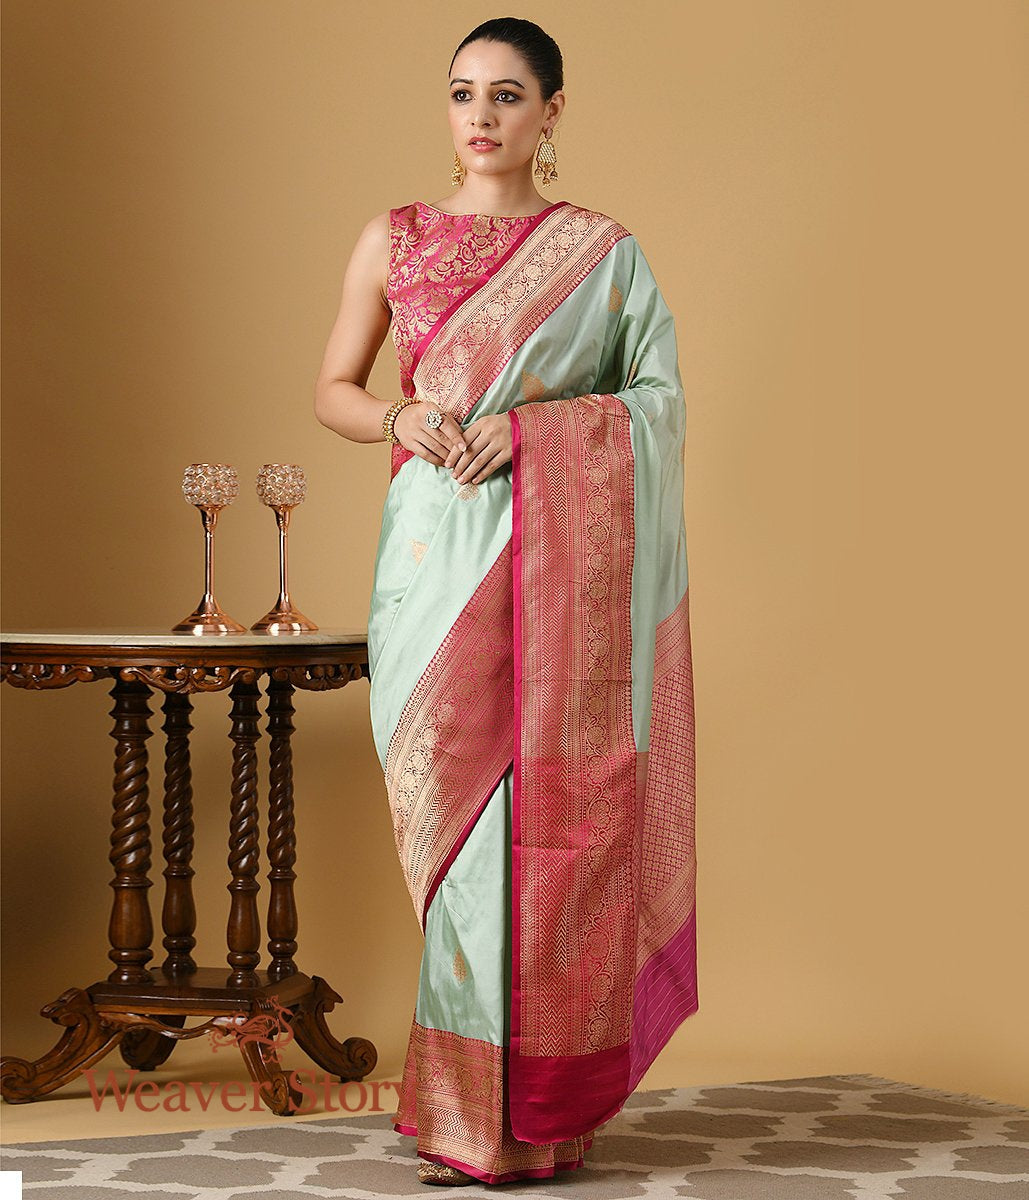 Handwoven Light Green Banarasi Saree with Pink and Gold Kadhwa Border